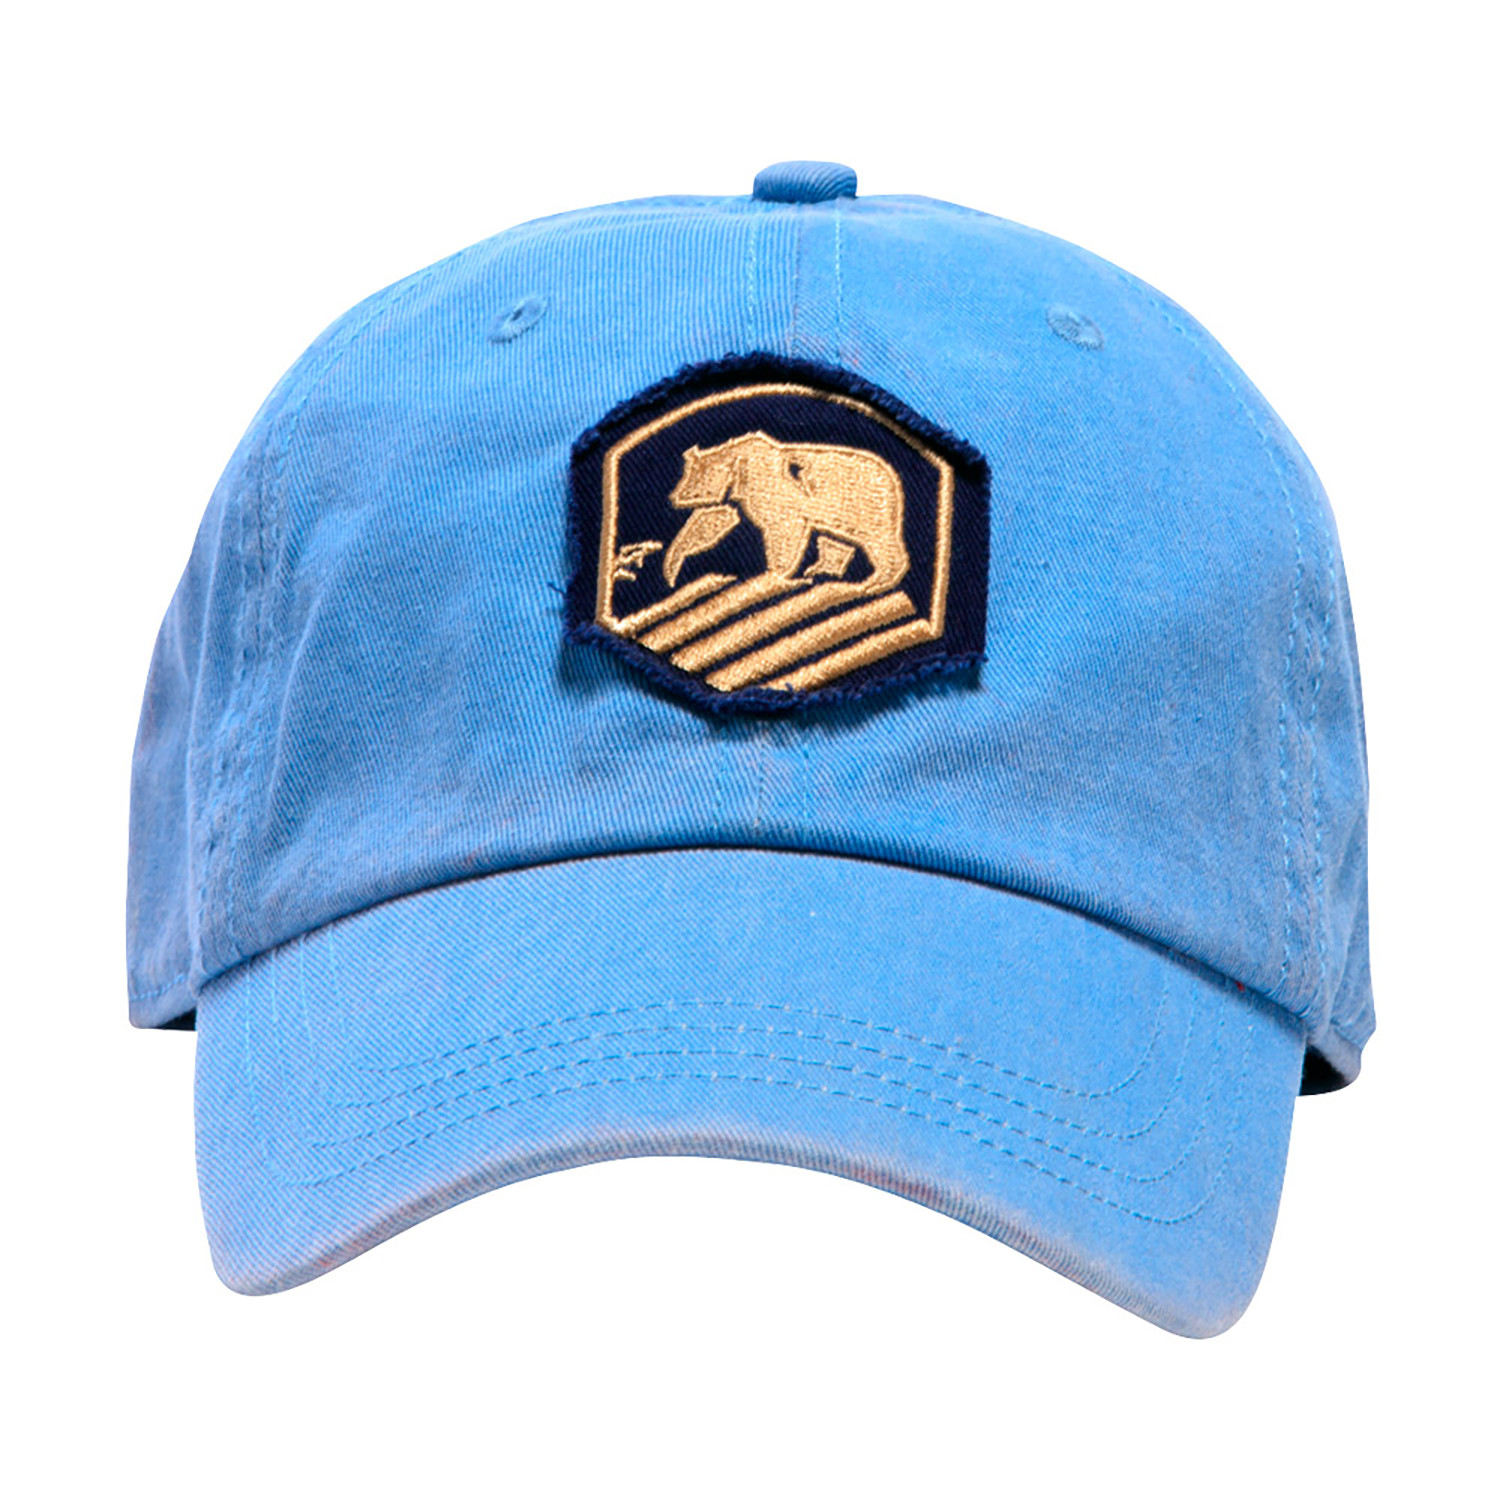 1949295d900ed Active Wear Cap    Faded Denim - The Normal Brand - Touch of Modern